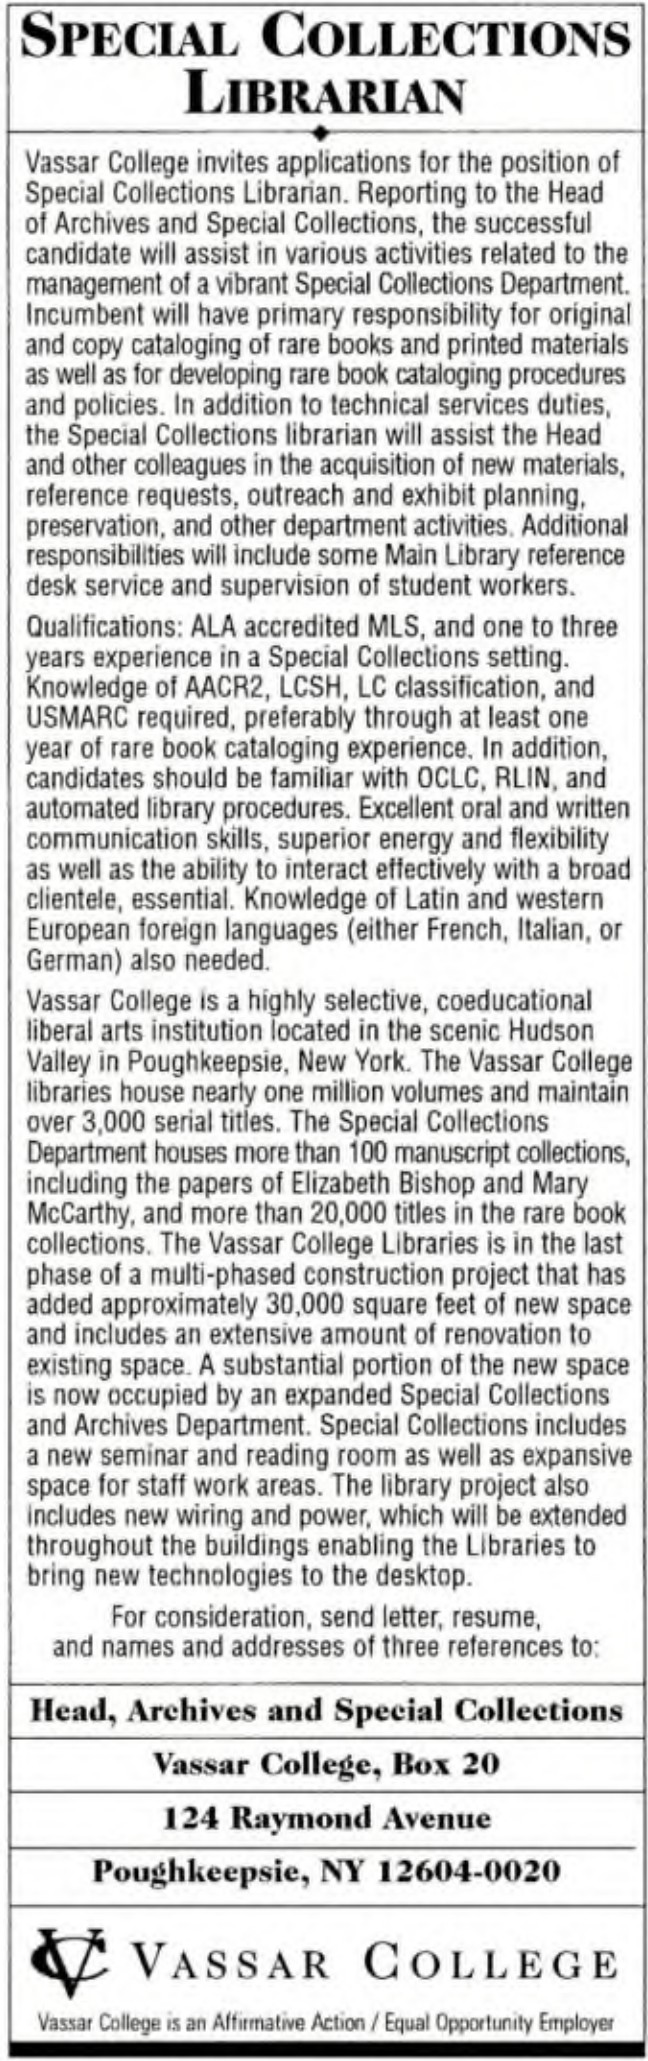 CLASSIFIED Ads | Library Association | College & Research